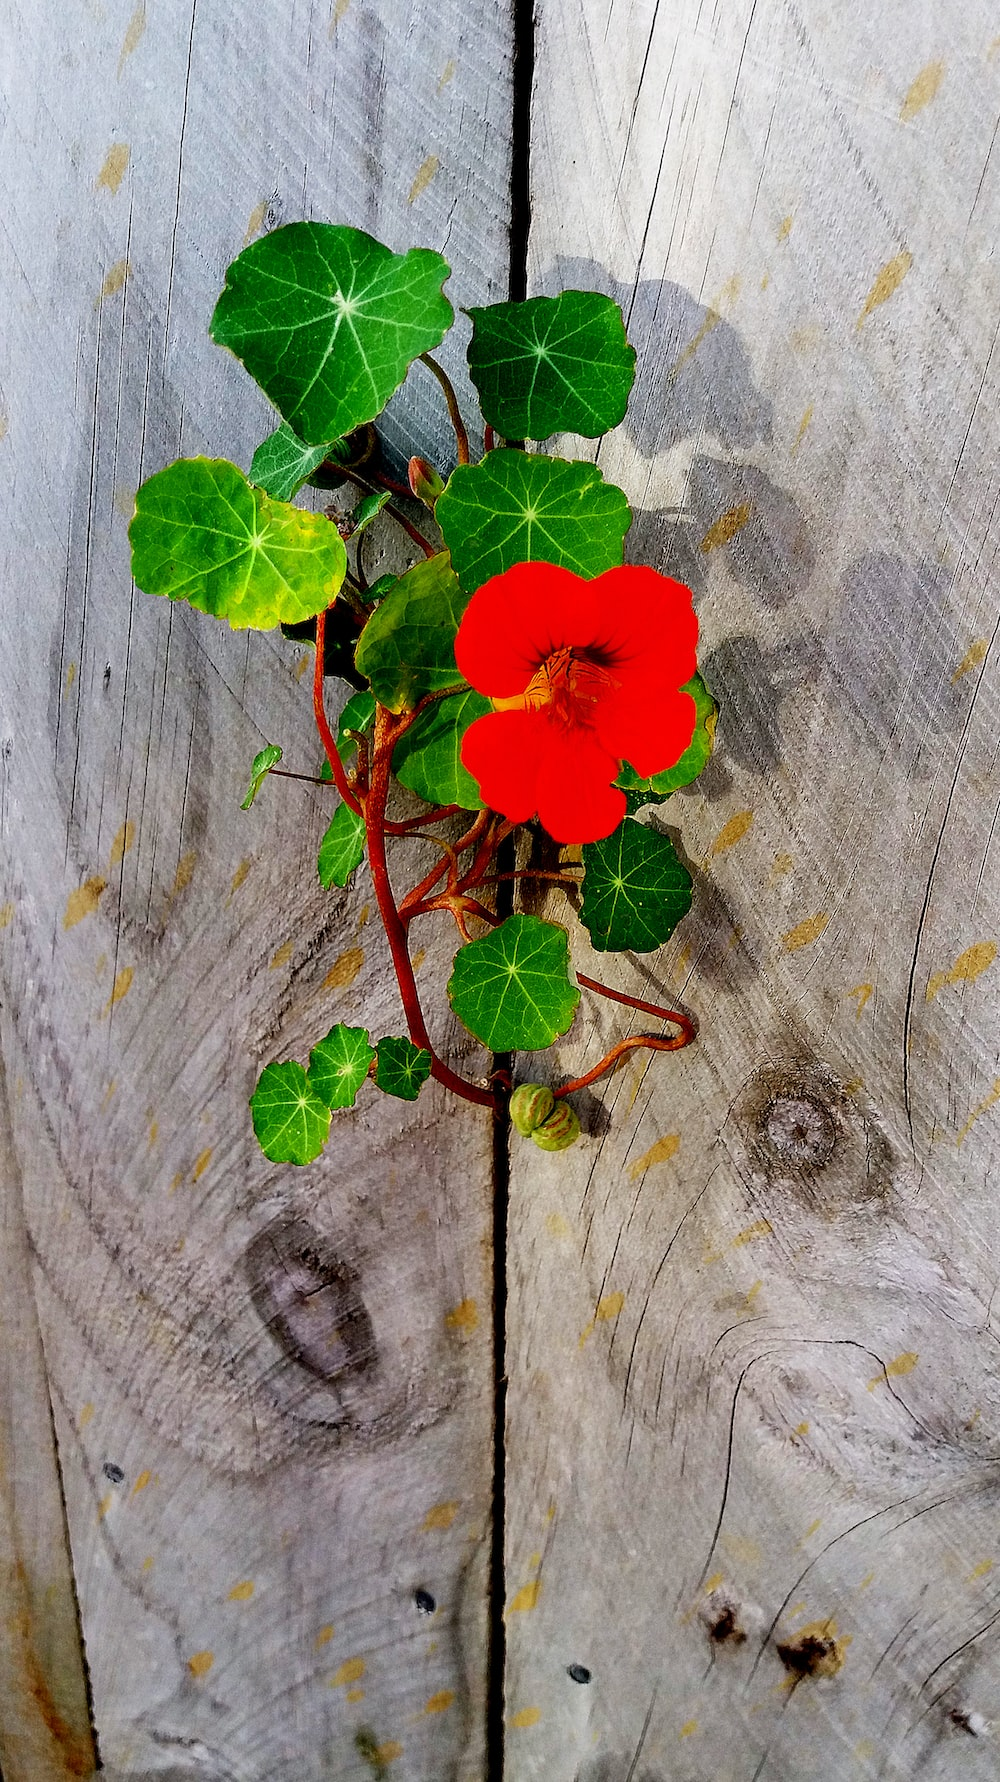 red flower on gray wooden surface